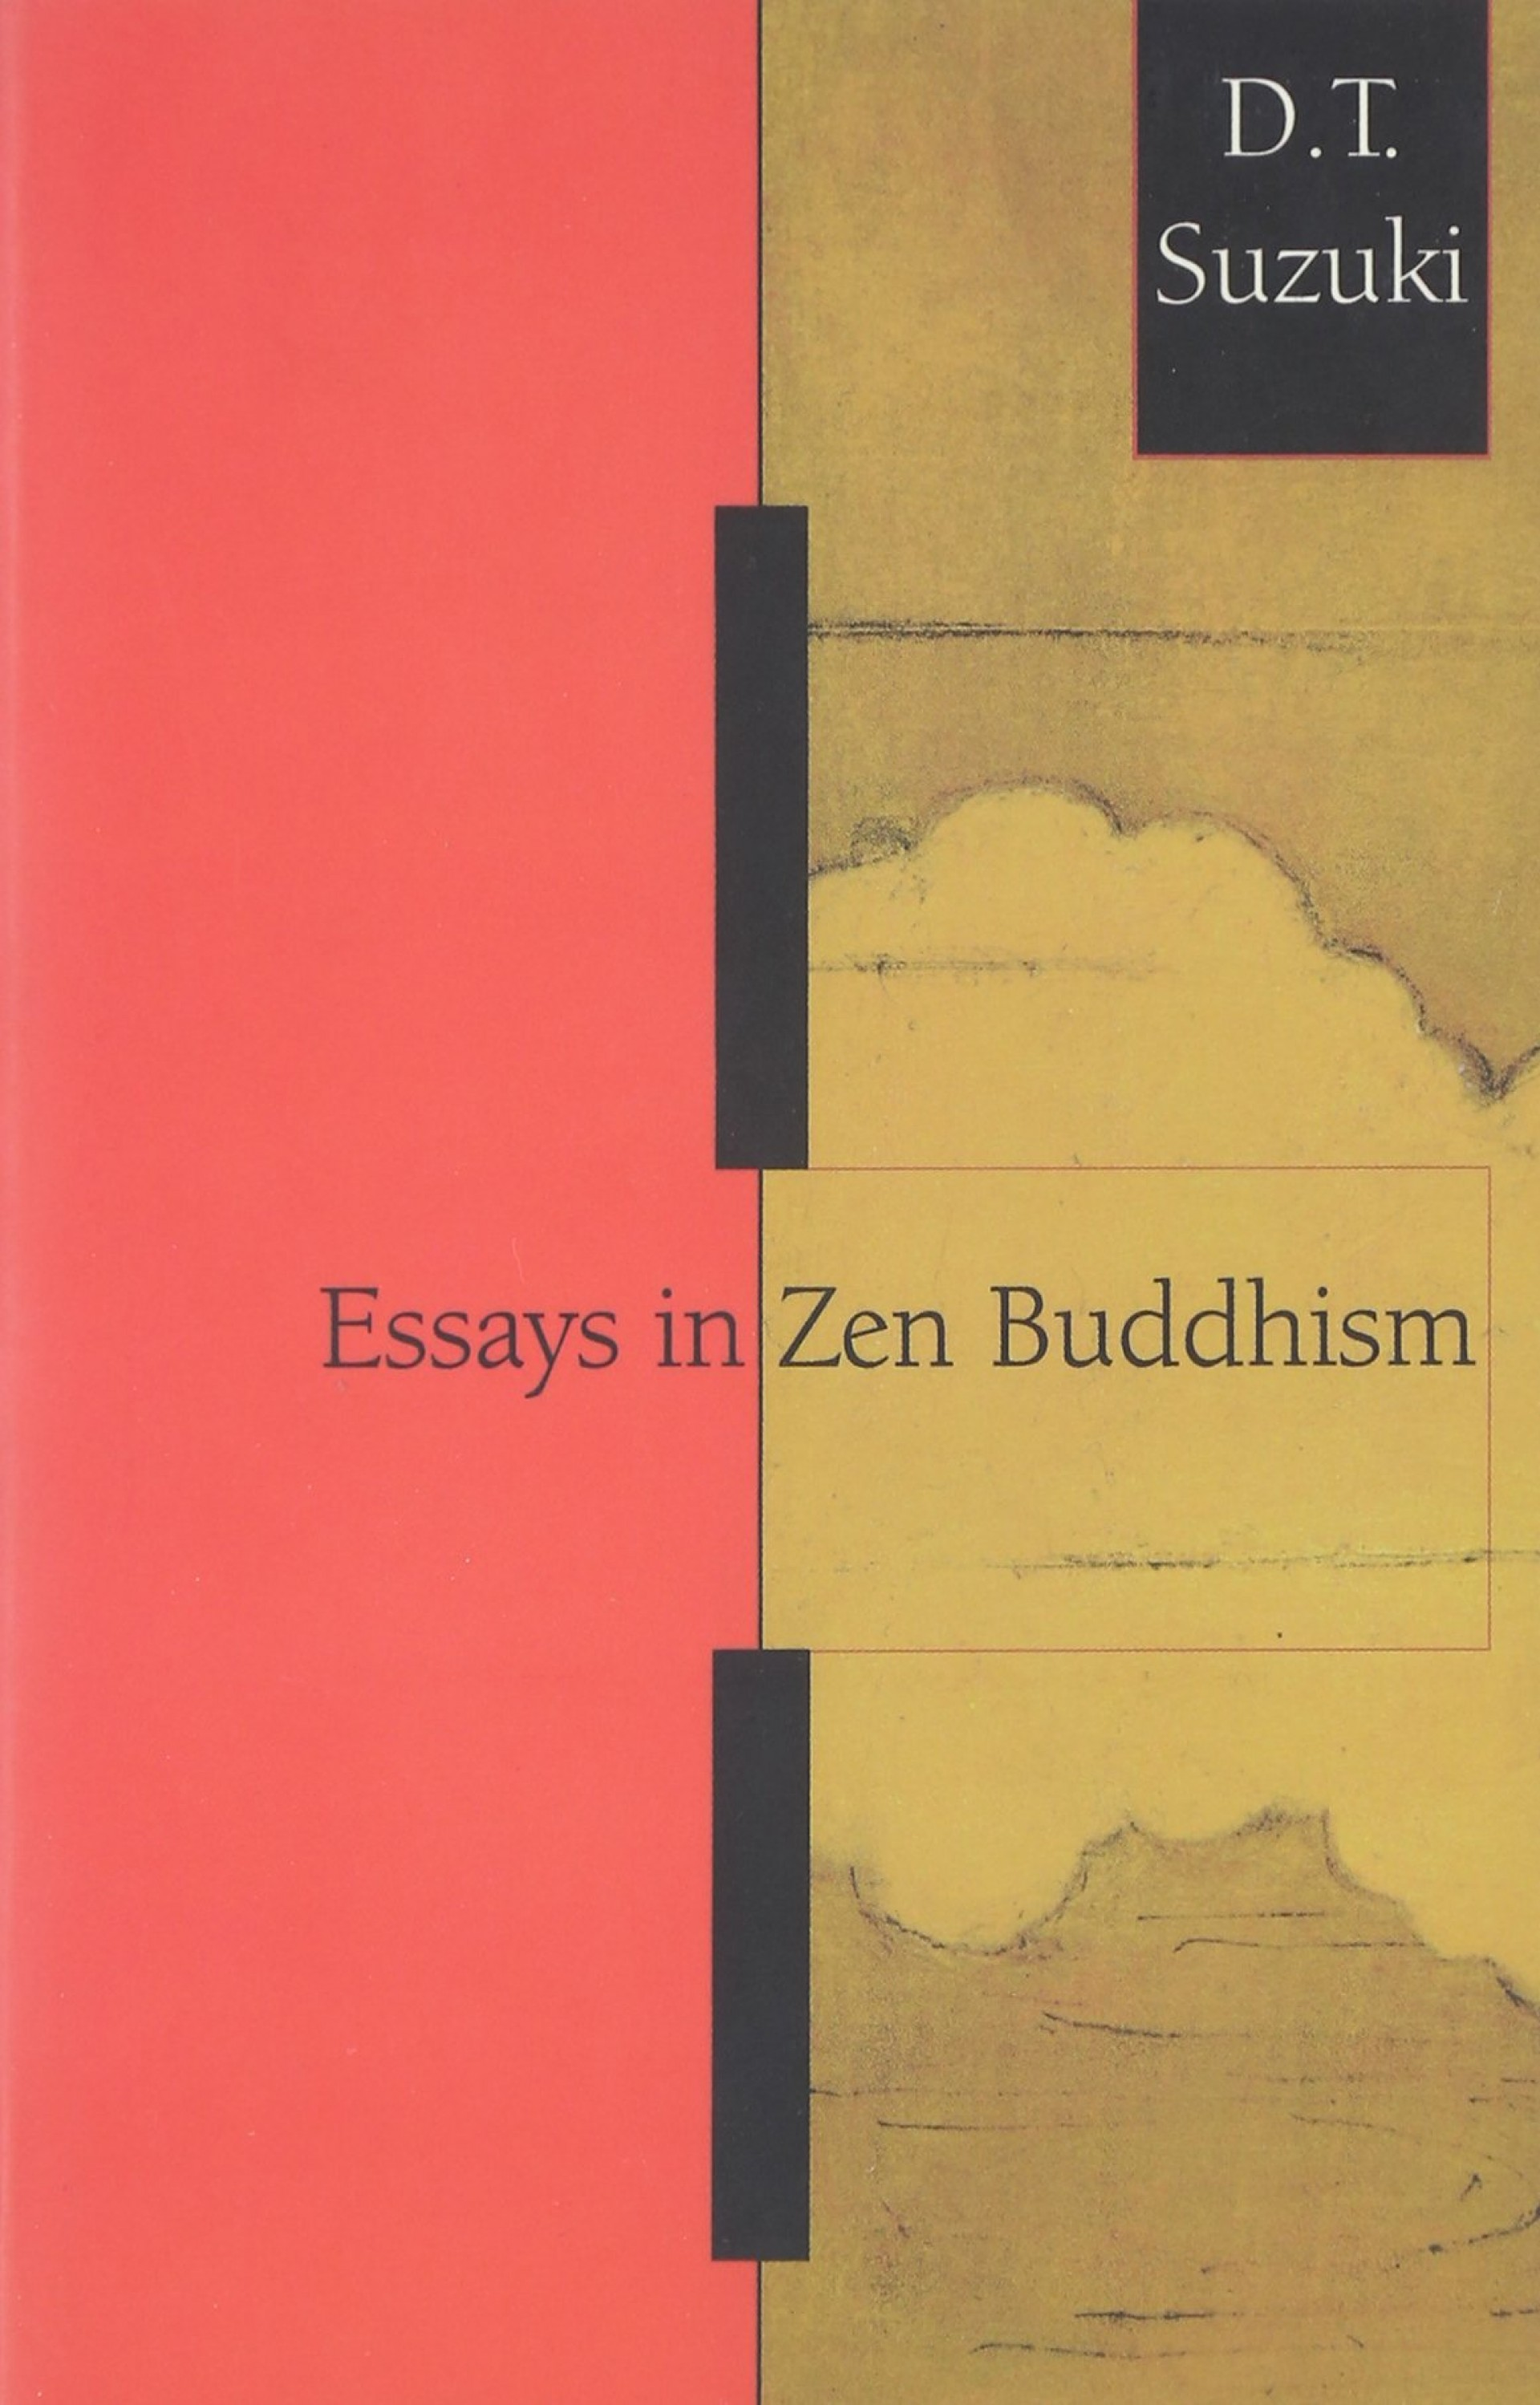 013 71cccelhvrl Buddhism Essay Beautiful Buddha In Hindi Ideas 1920